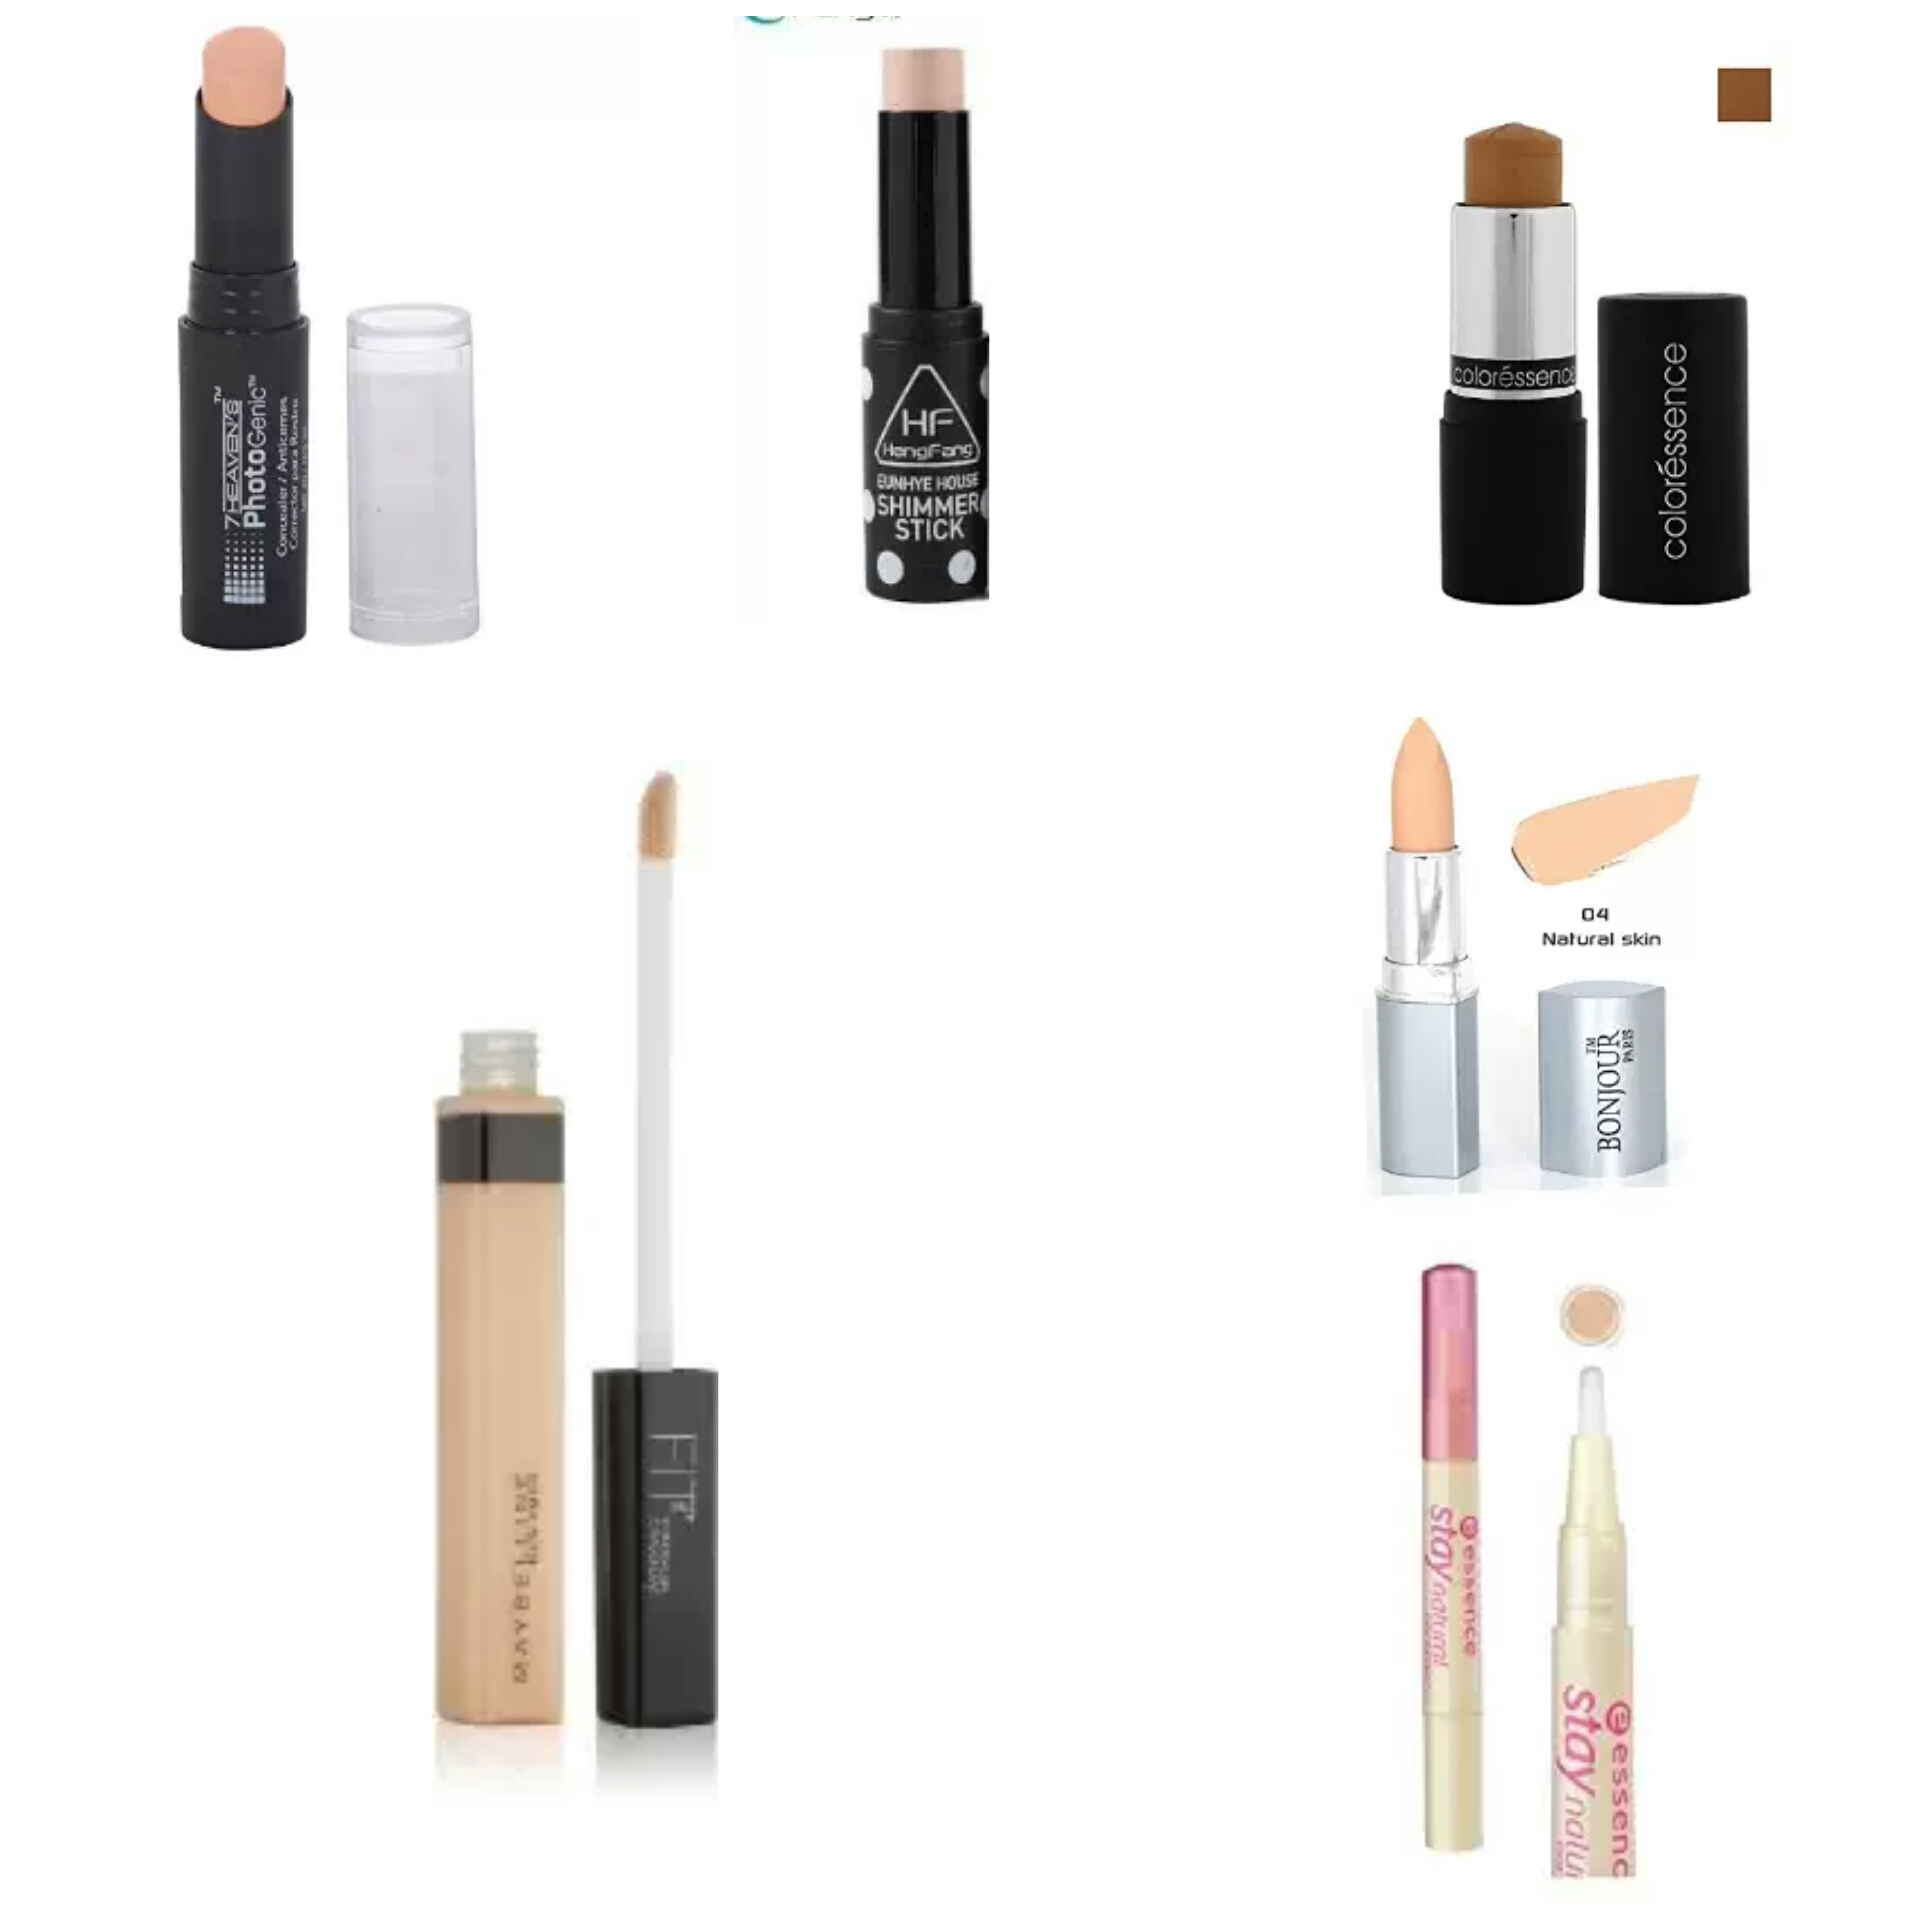 Affordable Makeup Products For College Going Girls   Affordable Concealers in India   Drugstore Concealers in India   High Coverage Drugstore Concealers In India